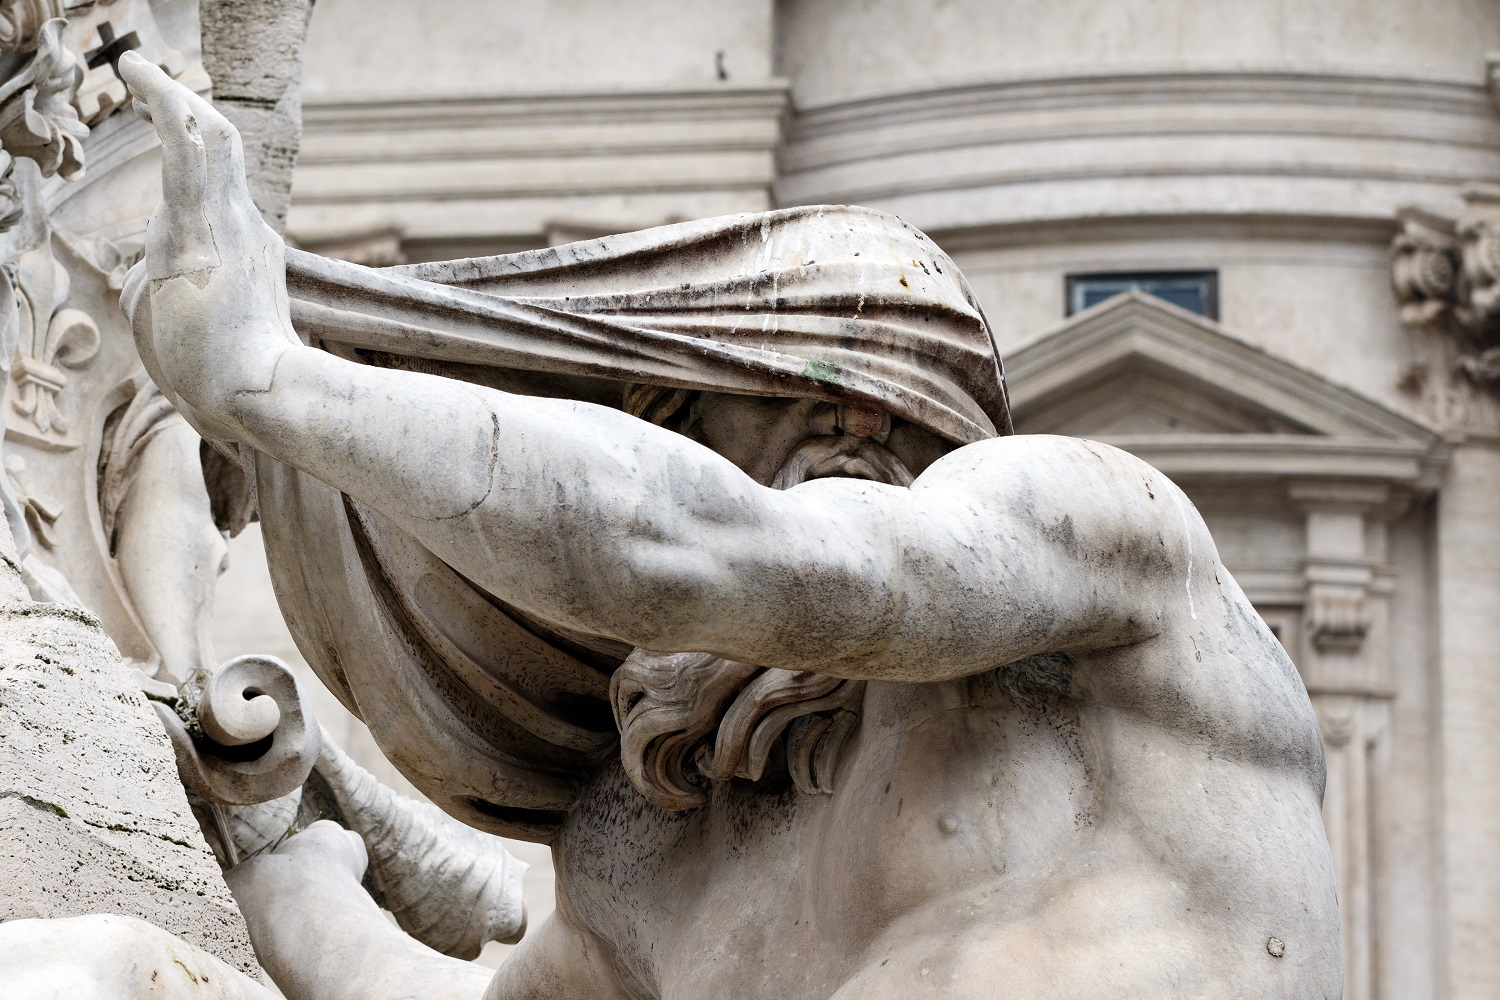 Sculpture detail of the Nile River god in The Fountain of the Four Rivers (The Fontana dei Quattro Fiumi) in the Piazza Navona in Rome, Italy. Monument was built by Gian Lorenzo Bernini in 1651.